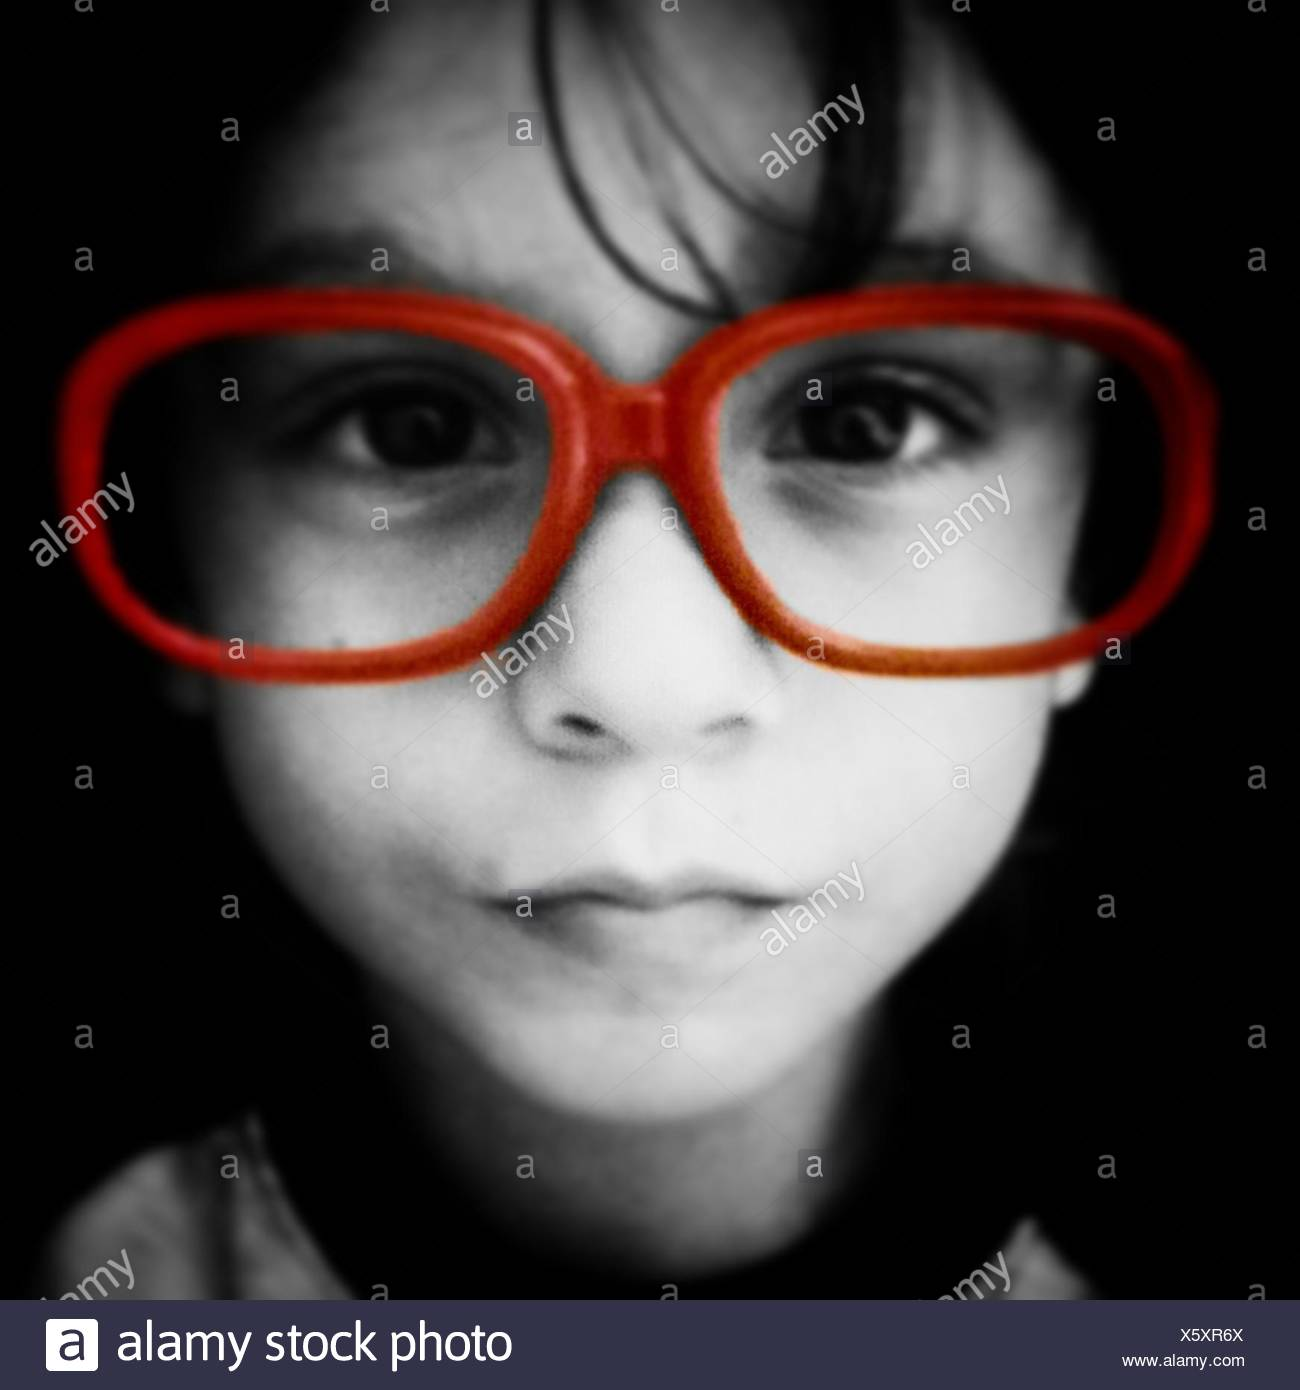 Boy Wearing Large Red Rimmed Eyeglasses - Stock Image